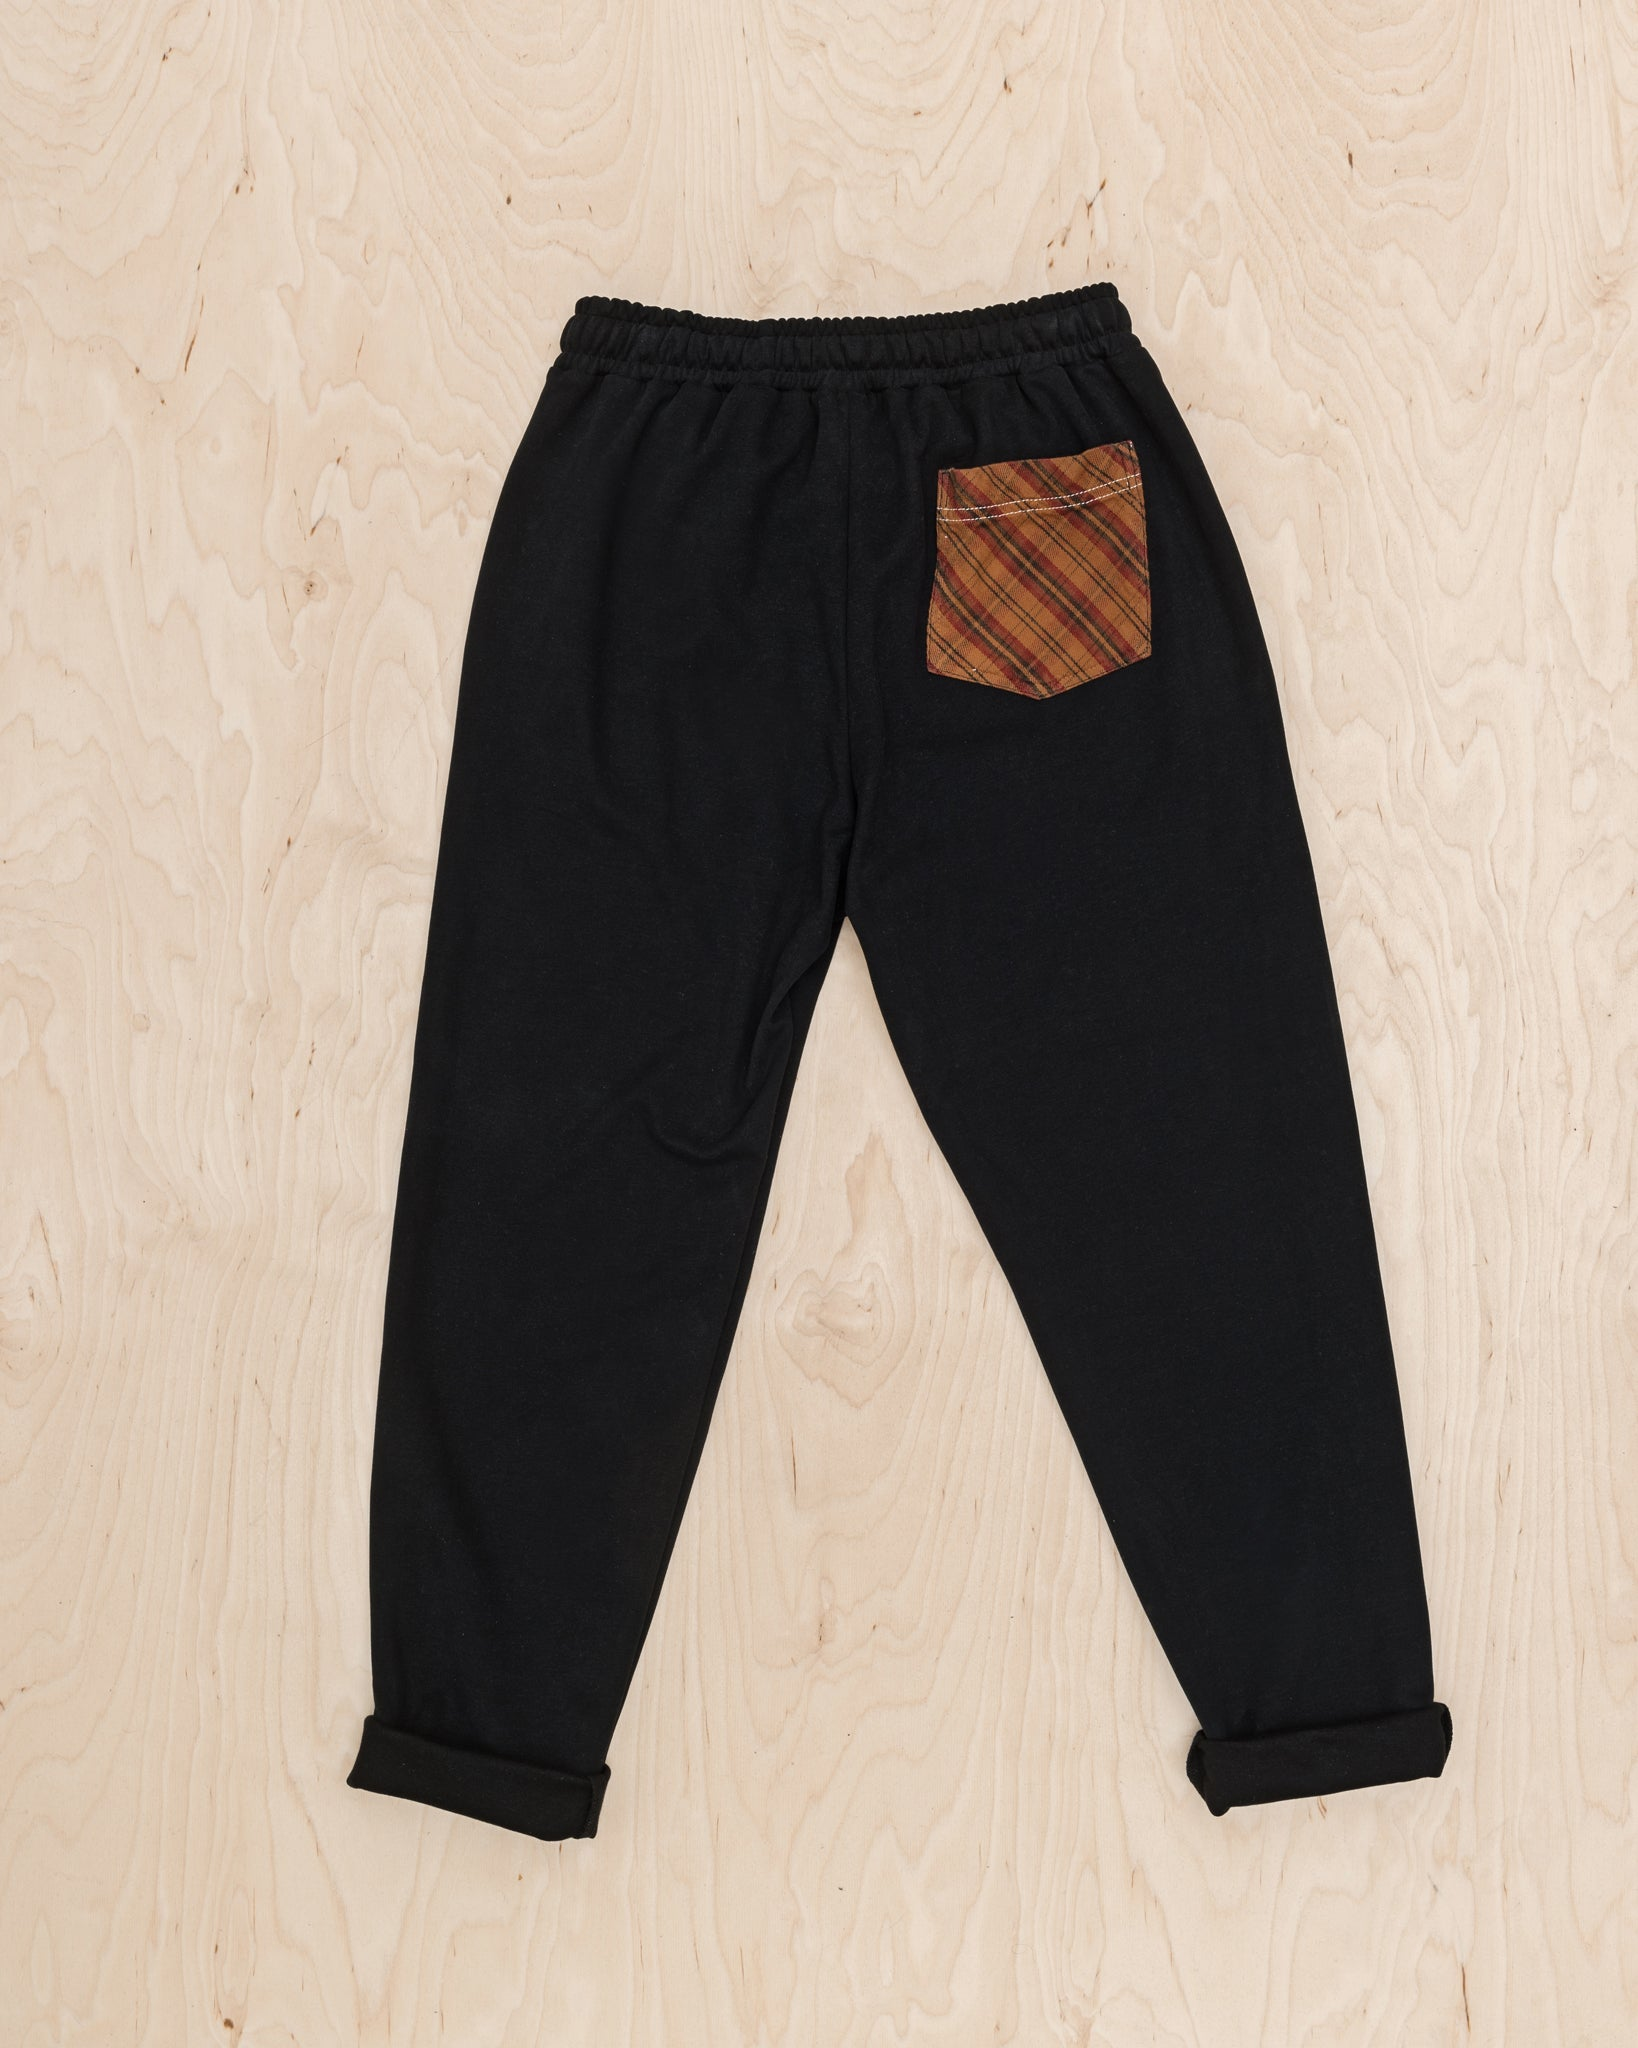 Black Unisex Organic Cotton Pants